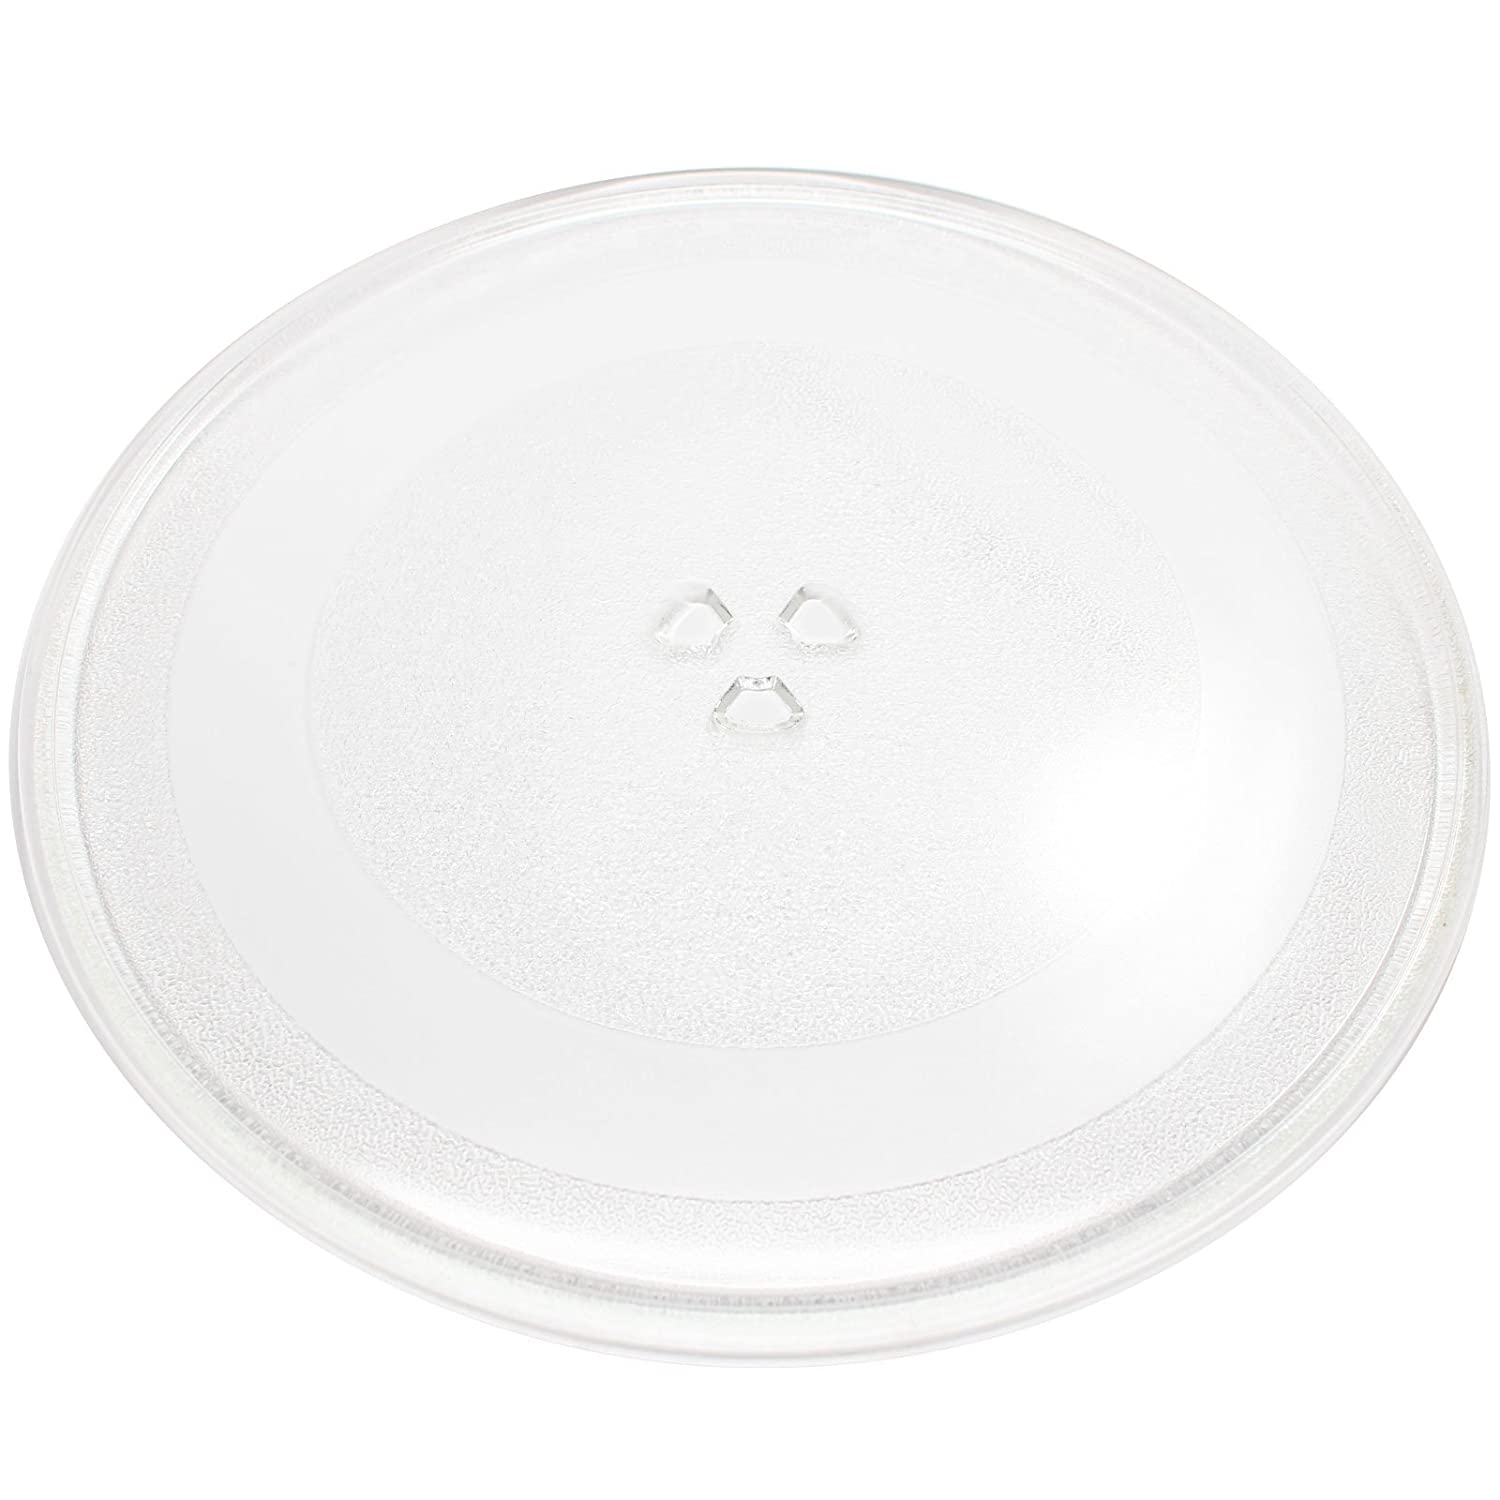 """Replacement General Electric/G.E. PVM1790SR1SS Microwave Glass Plate - Compatible General Electric/G.E. WB49X10114 Microwave Glass Turntable Tray - 13 1/2"""" (345mm)"""